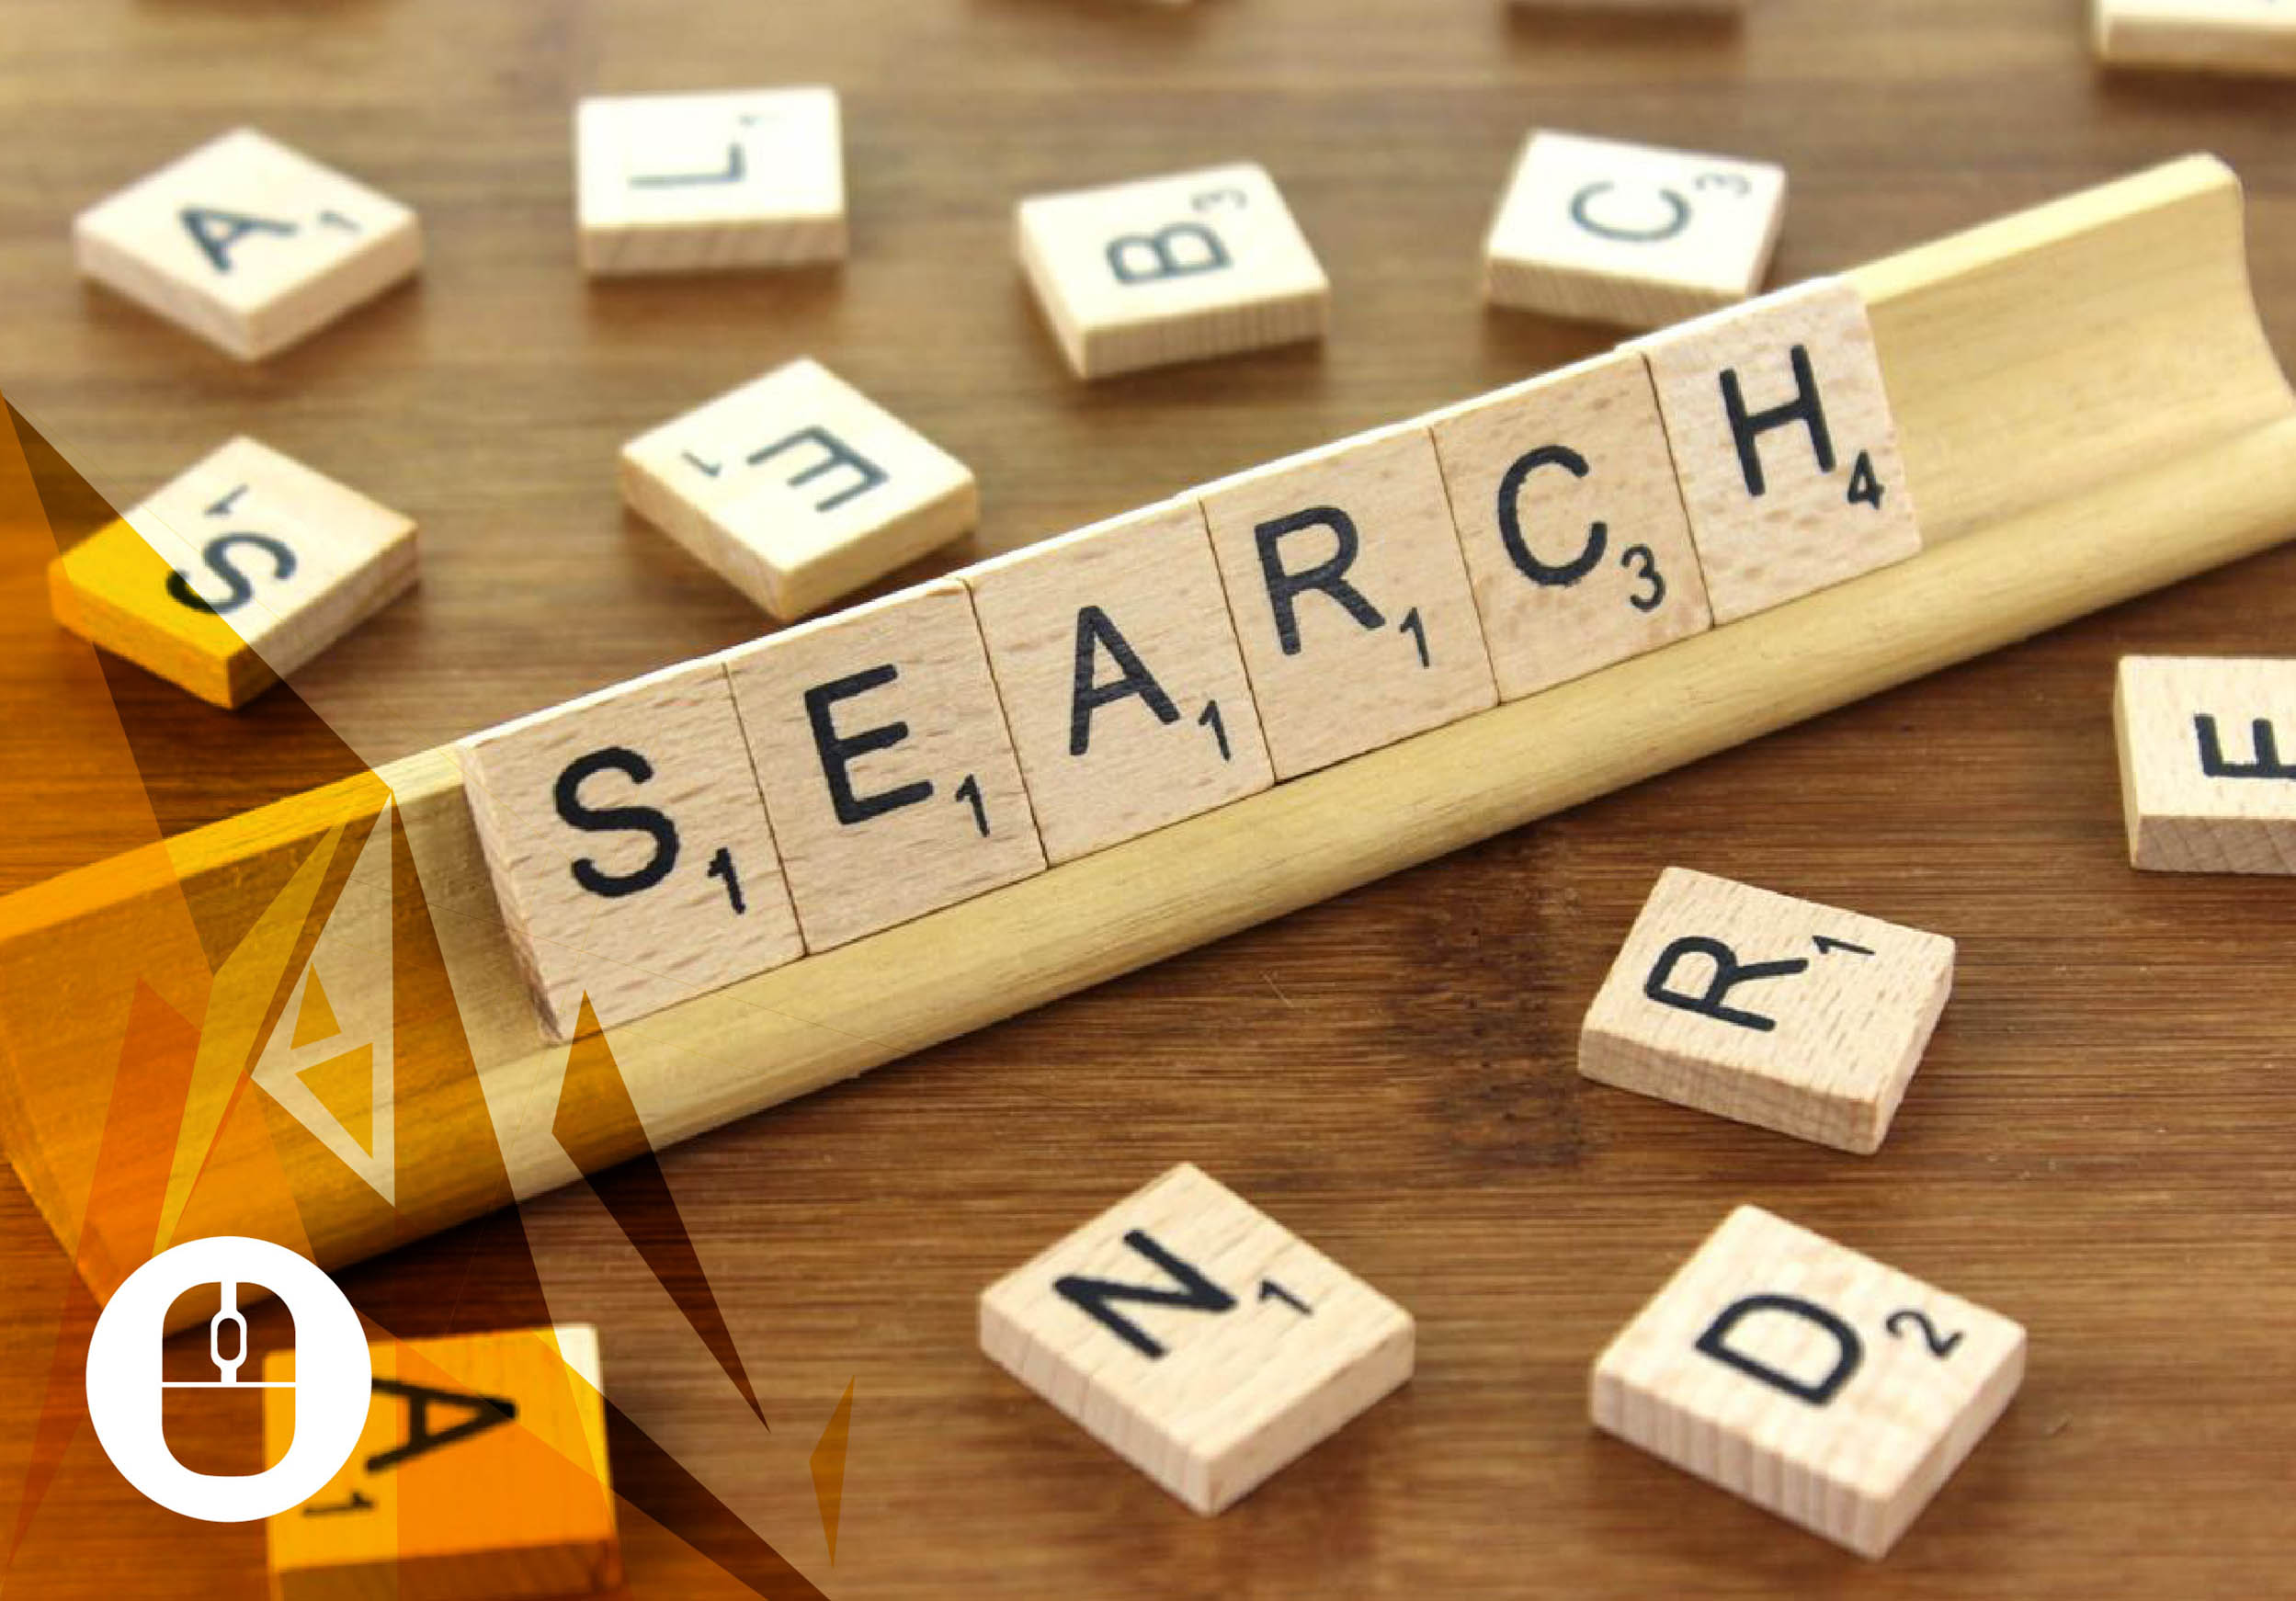 jc-web-google-seo-search-engine-optimisation-img